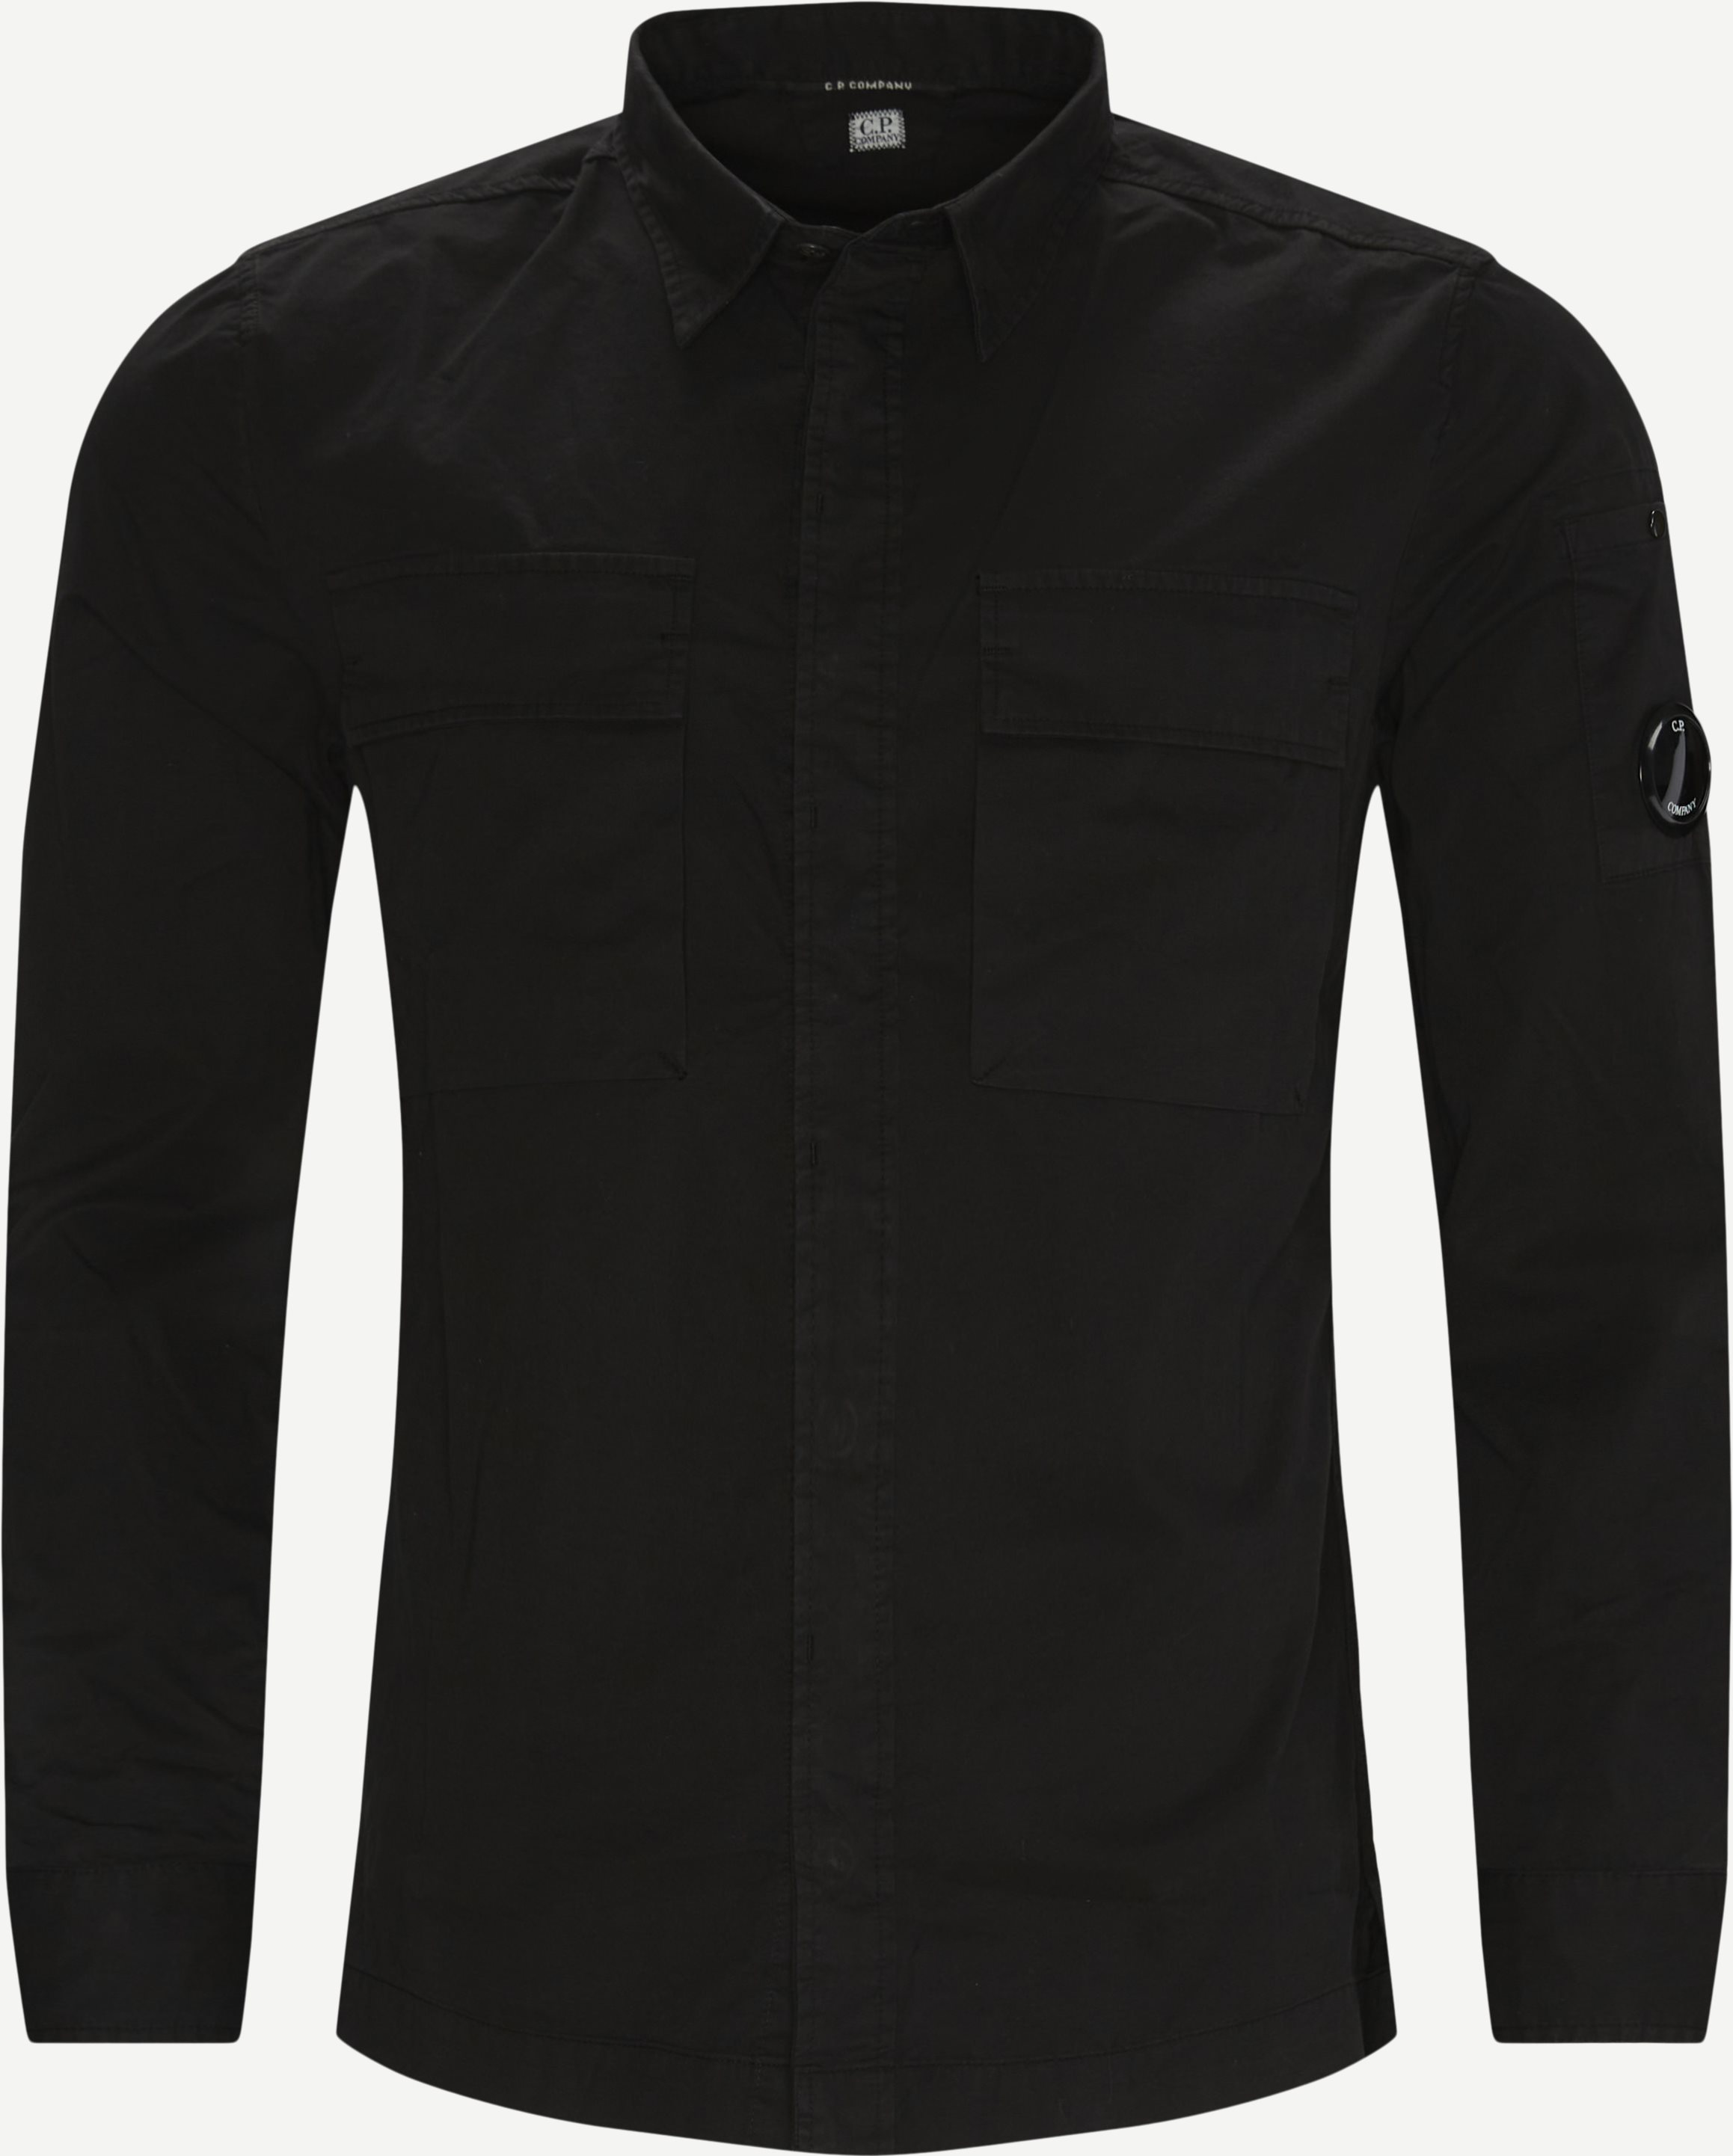 Emerized Gabardine Garment Dyed Shirt - Skjortor - Regular - Svart